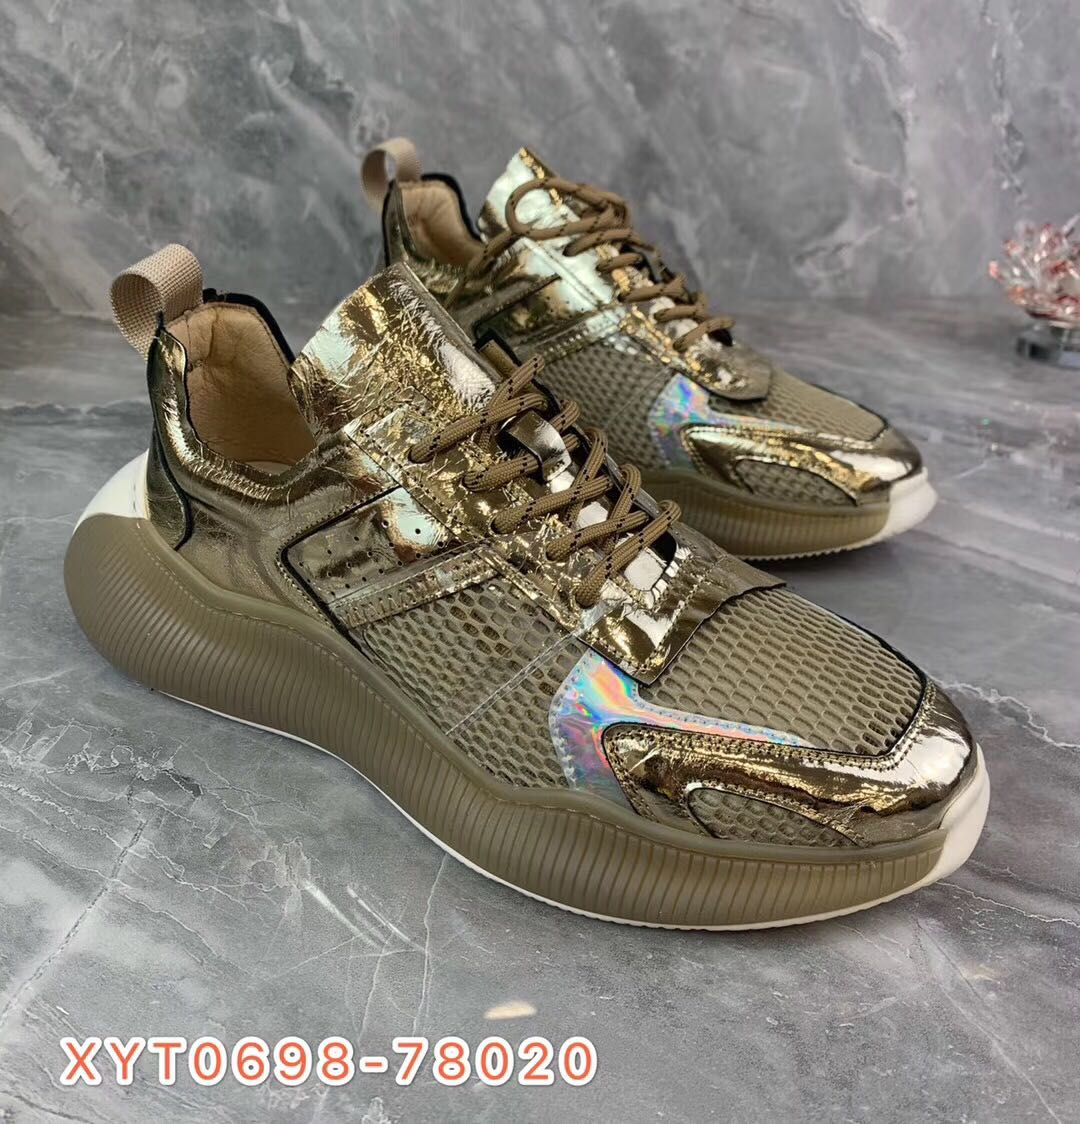 [pictures of Western Asia] 20 years new real leather shoes, leisure shoes, dada shoes, mesh shoes, film sole sports shoes